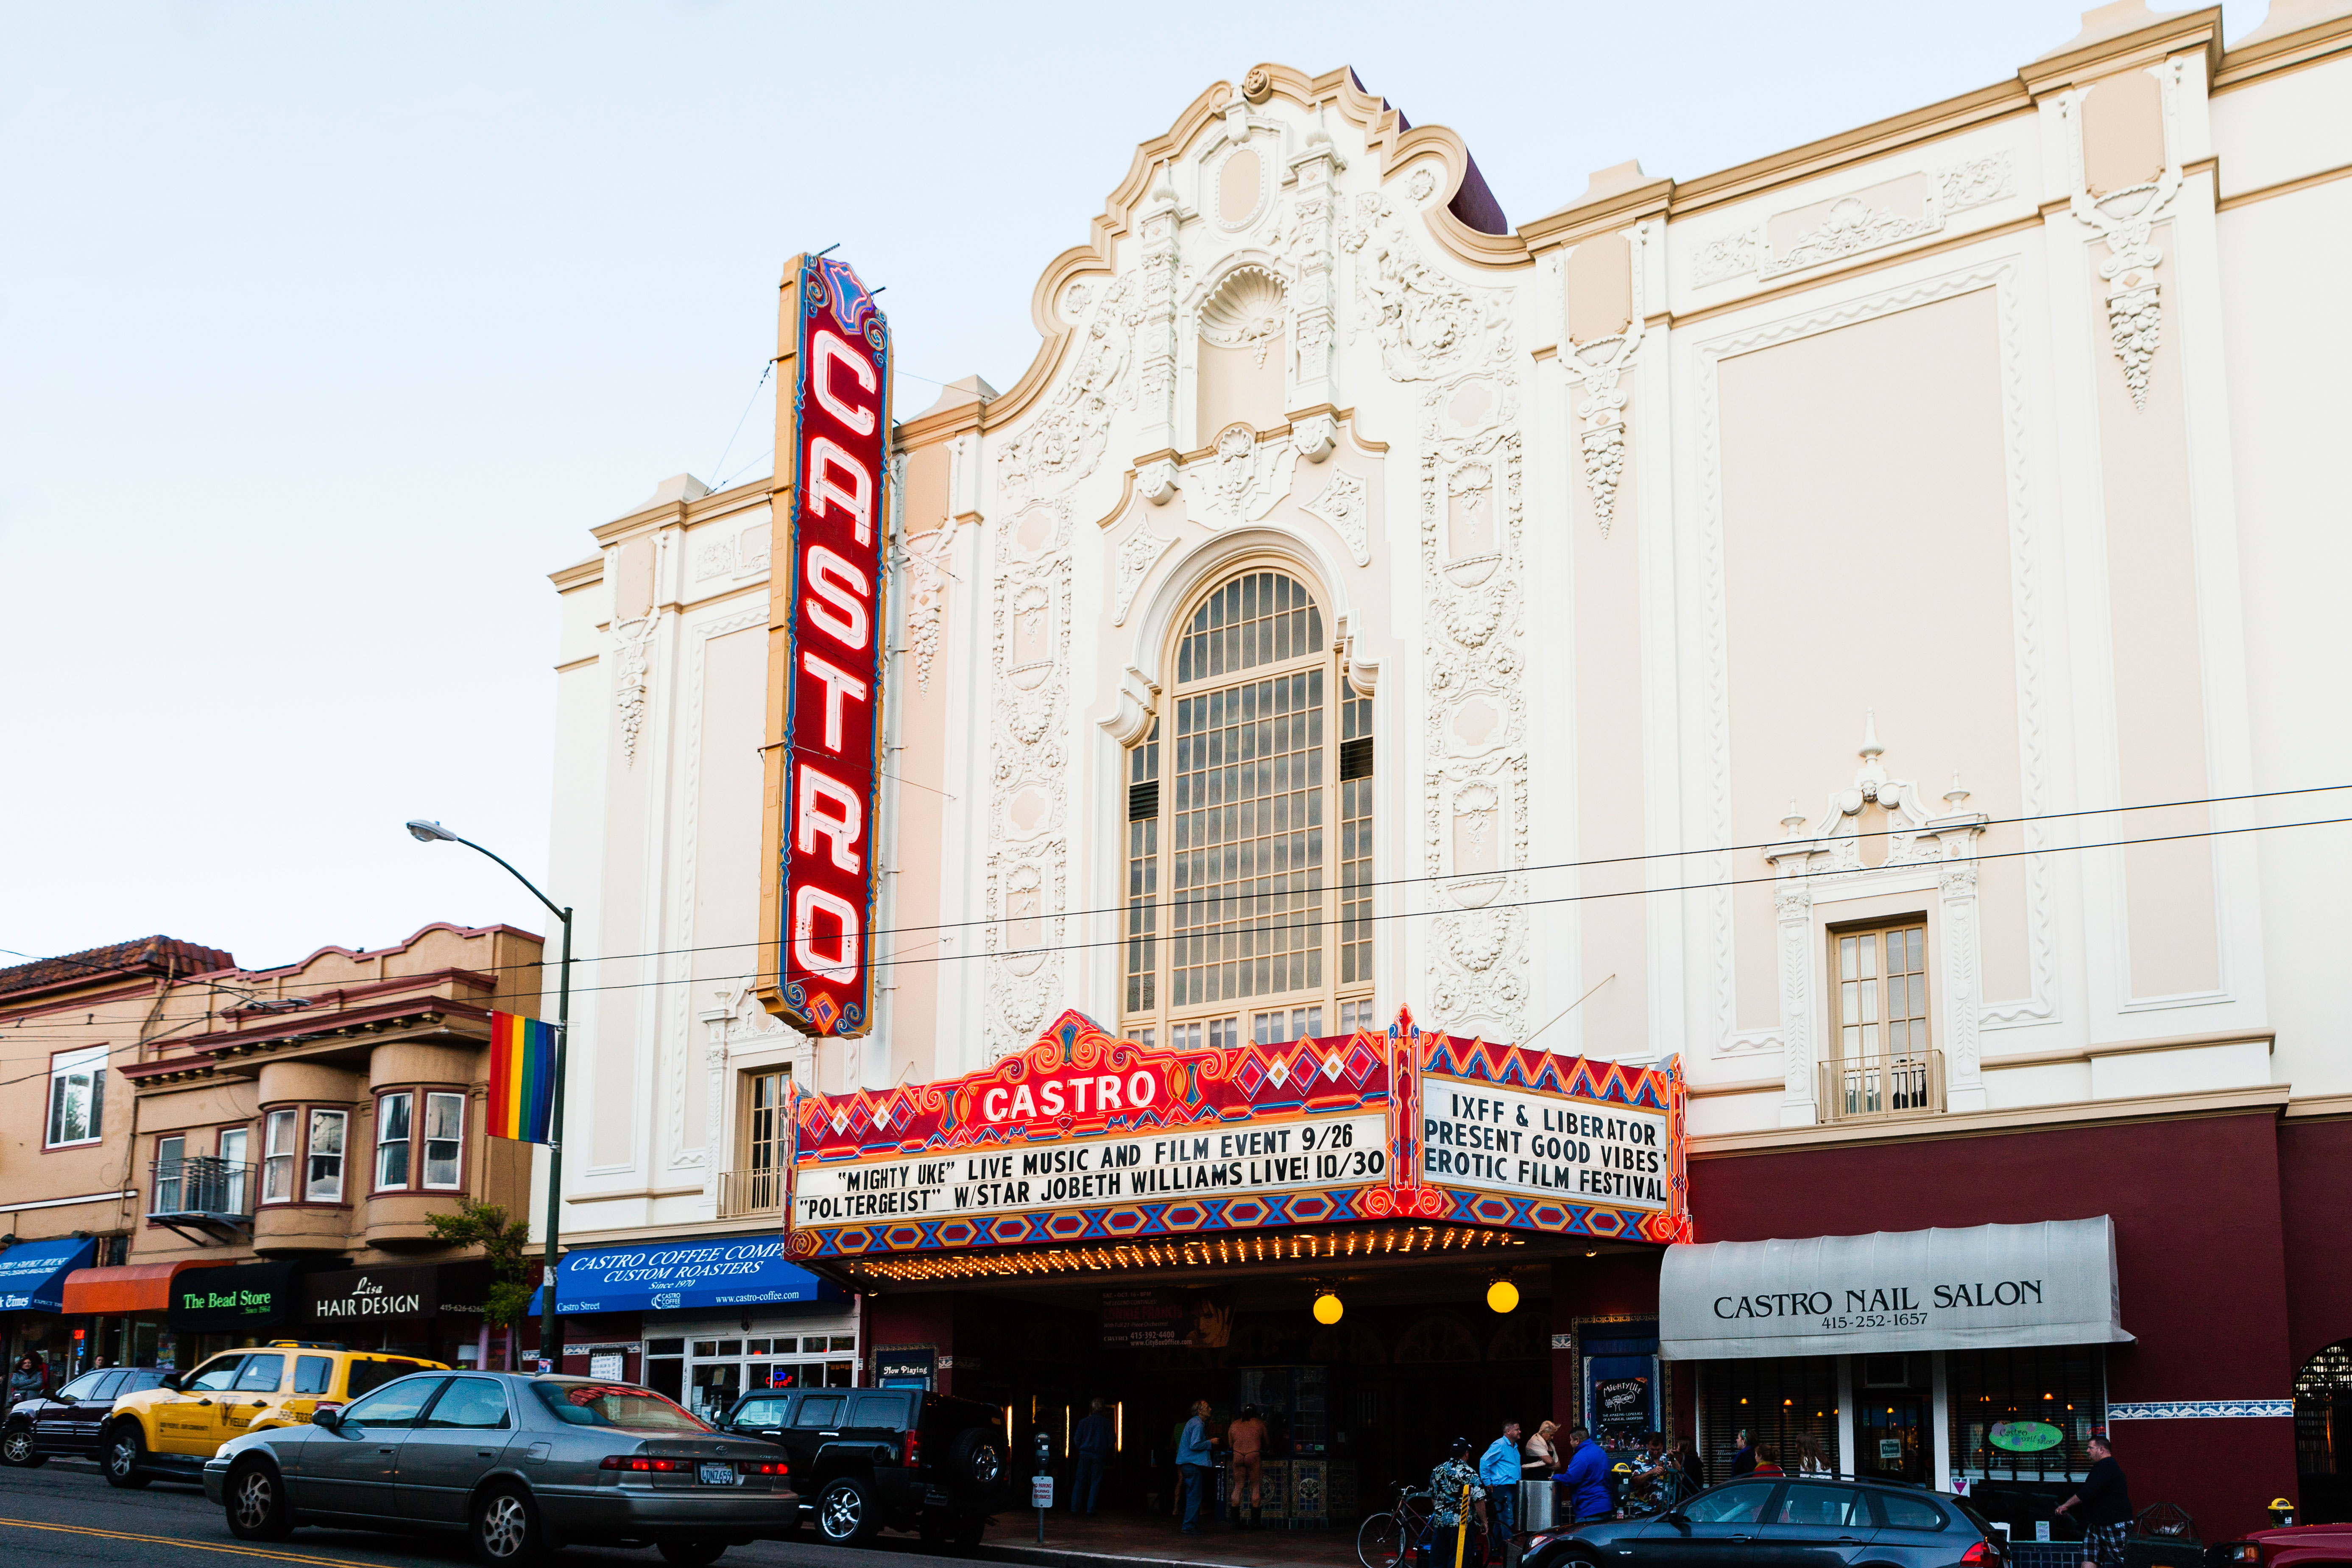 12 historic movie theaters - Sunset Magazine